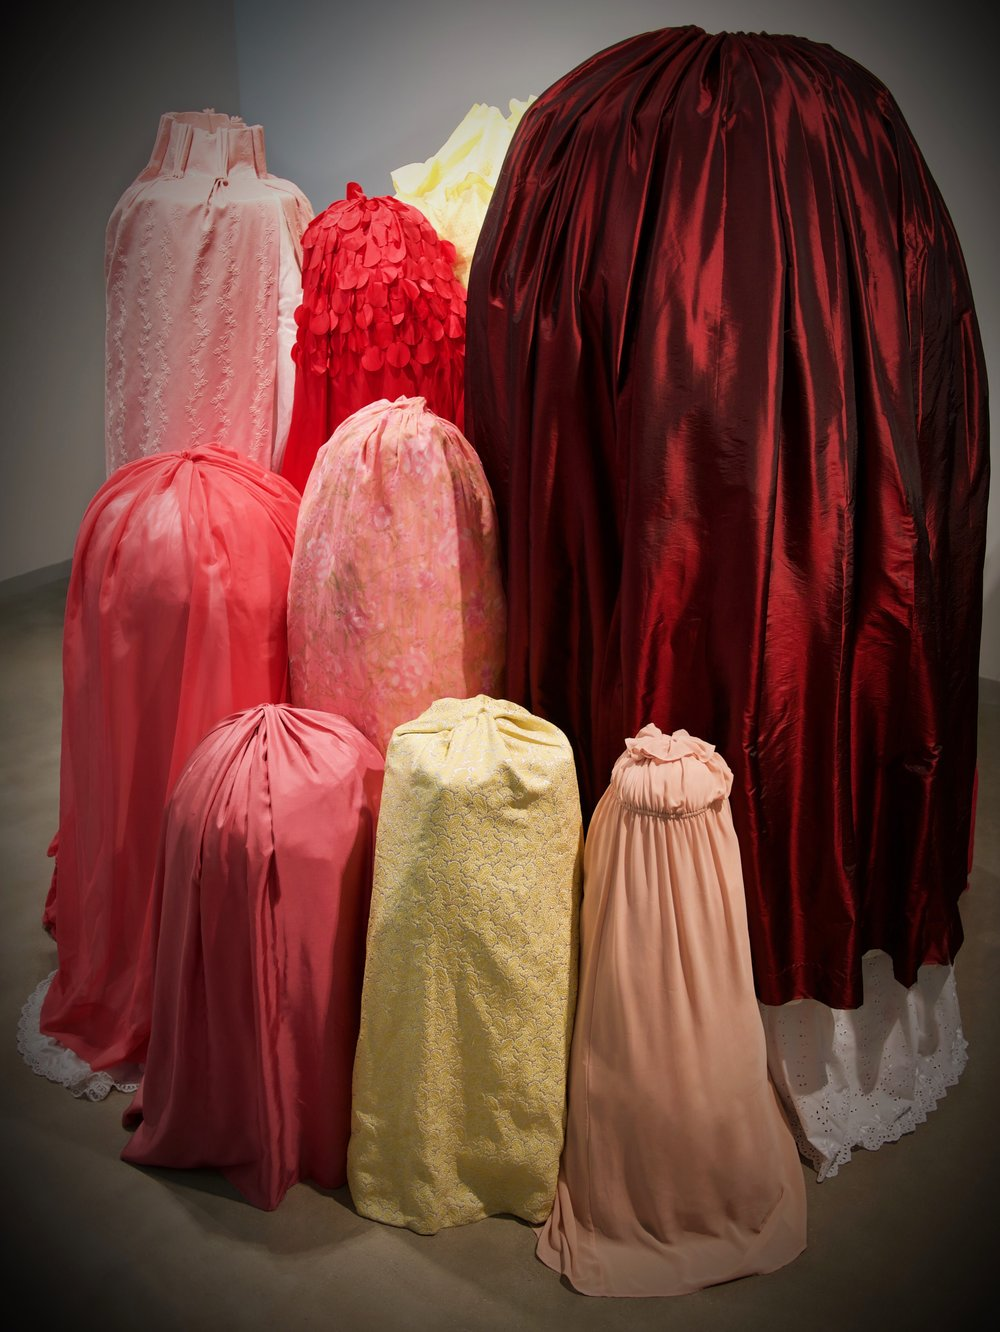 """Open Secret   105"""" x 120"""" x 100"""" - dimensions variable  Used garments, used household linens, touch sensitive vibrating motor, manufactured cherry scent  (2019)"""